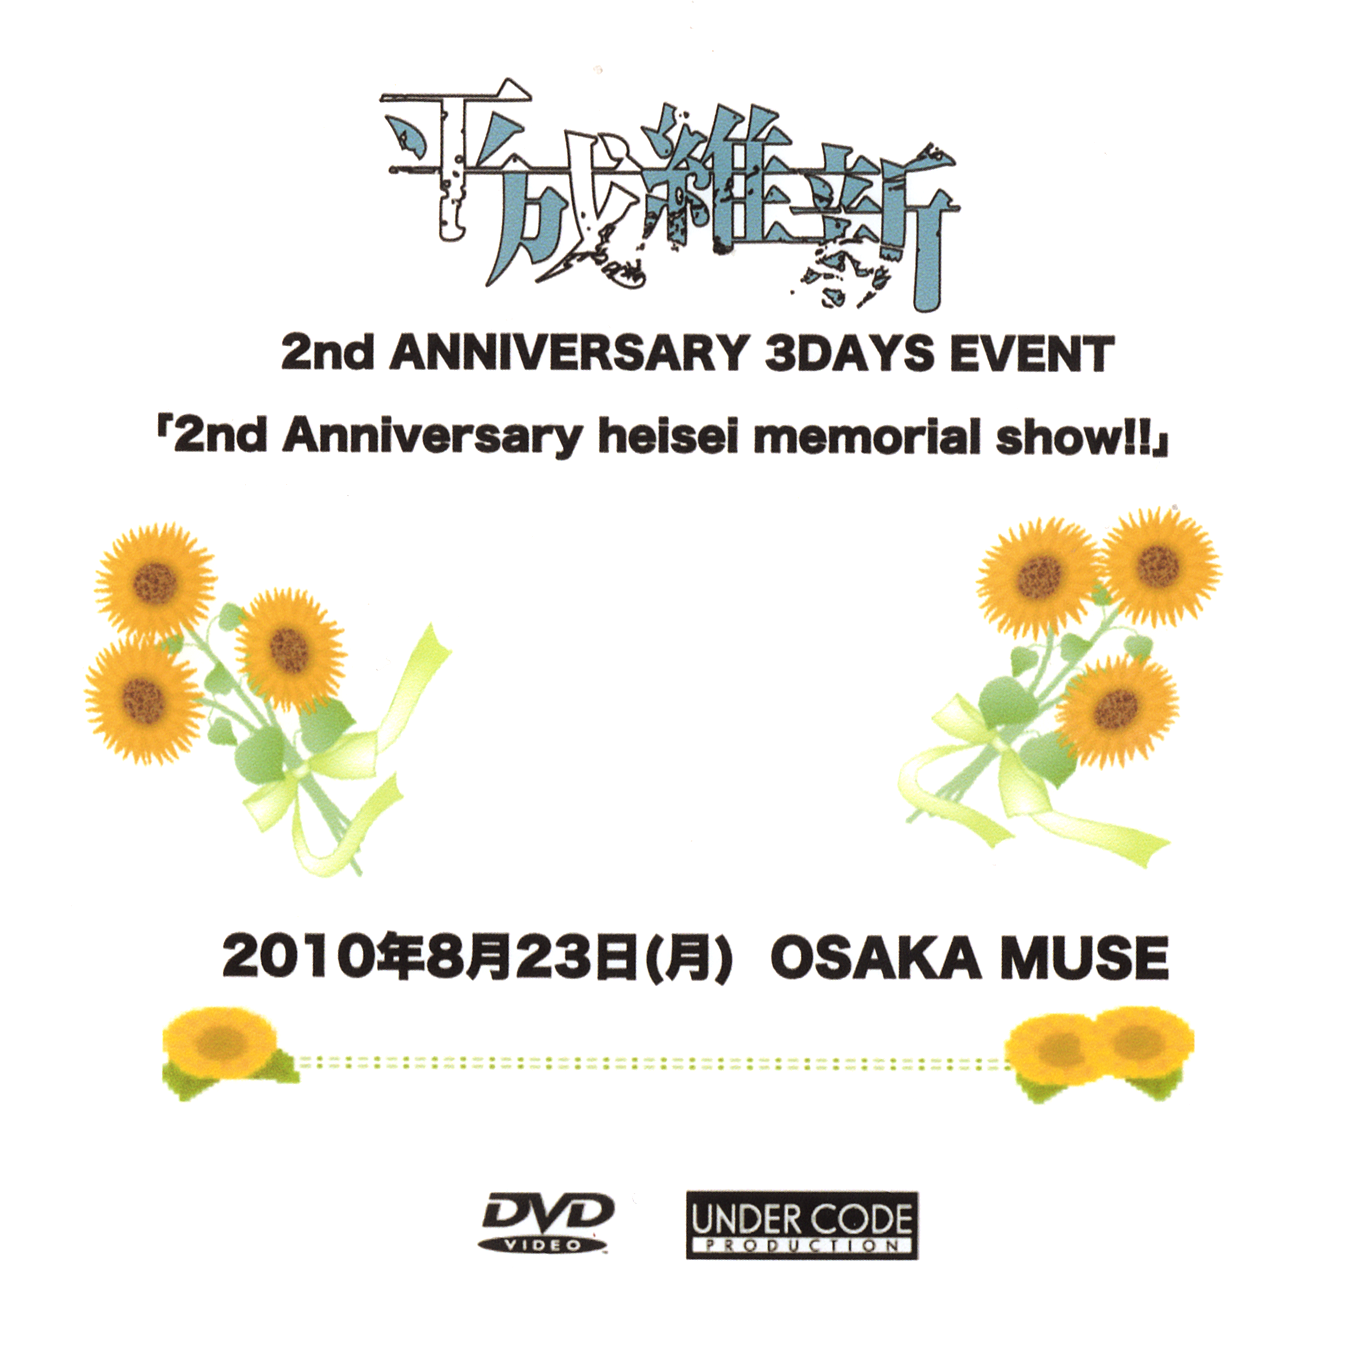 2nd ANNIVERSARY 3DAYS EVENT 「2nd Anniversary Heisei